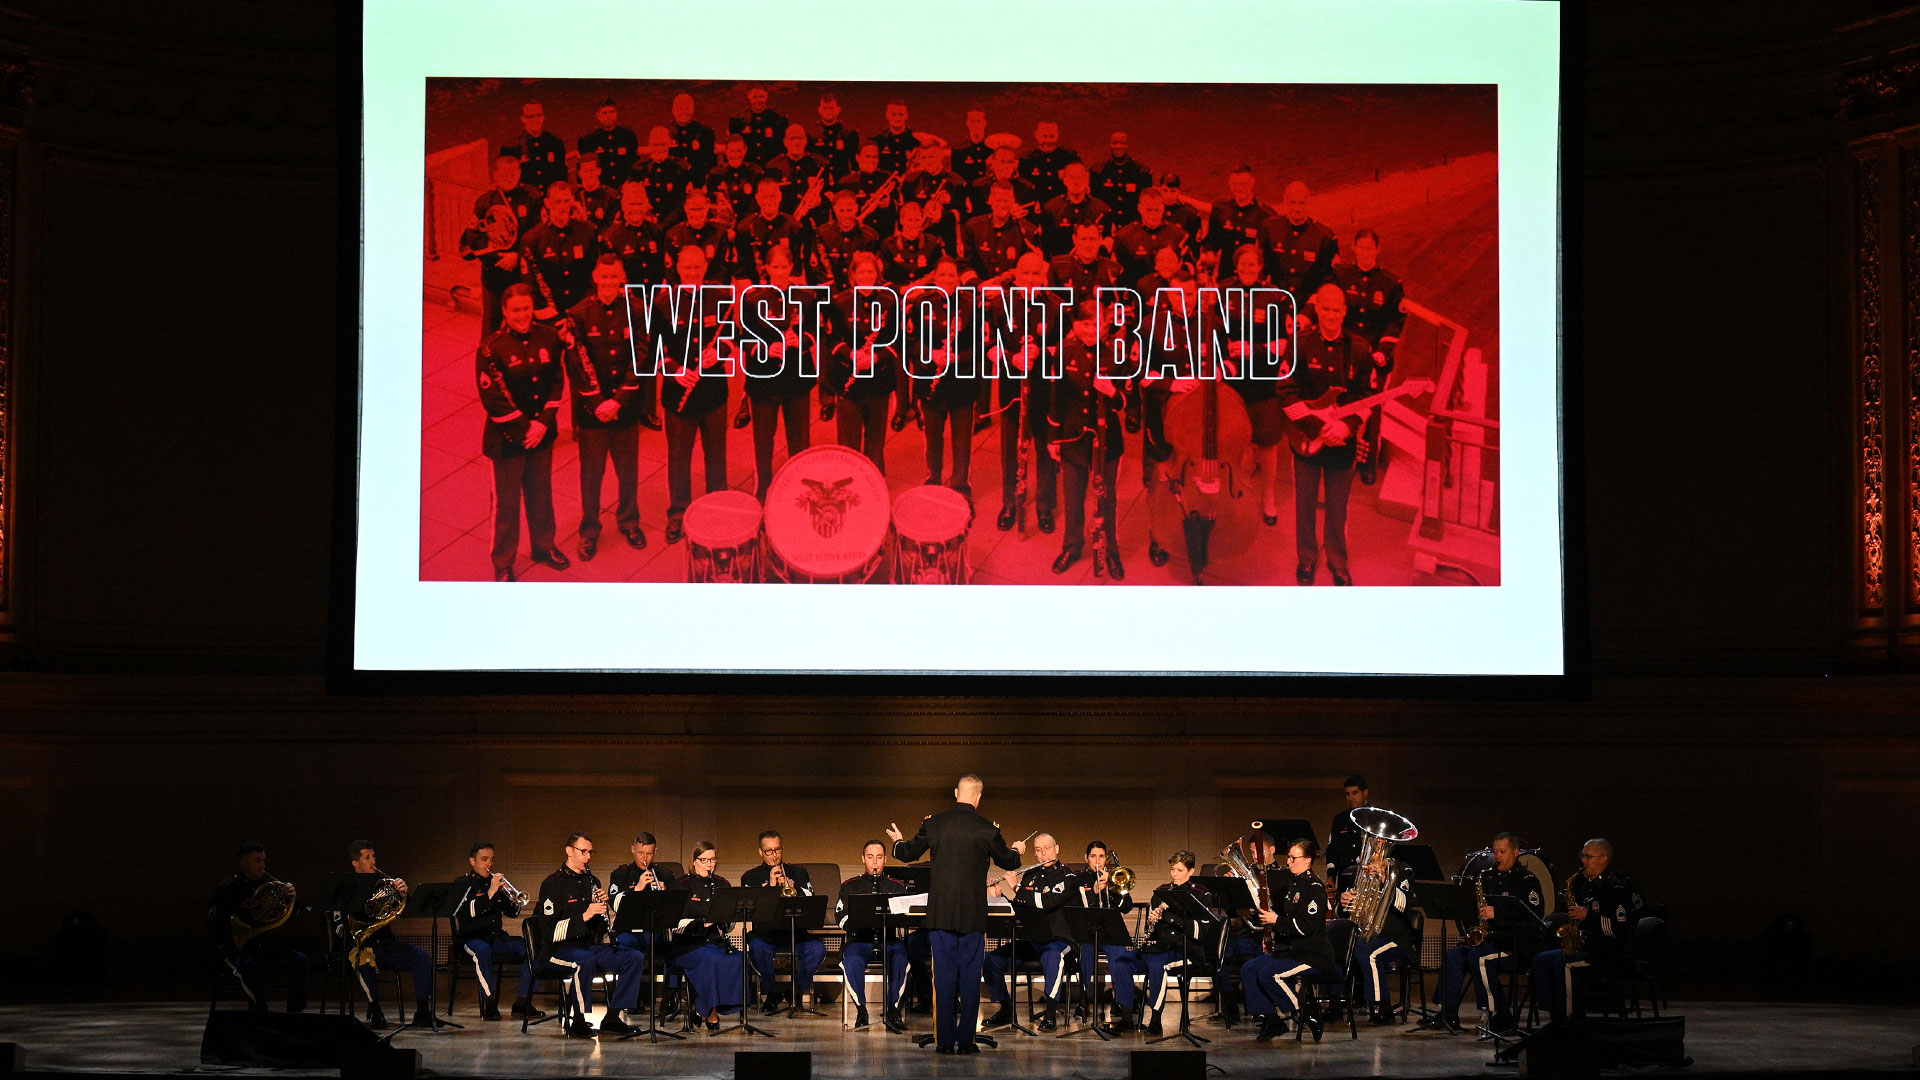 The West Point Band, the US Army's oldest active band, kicked off the day!